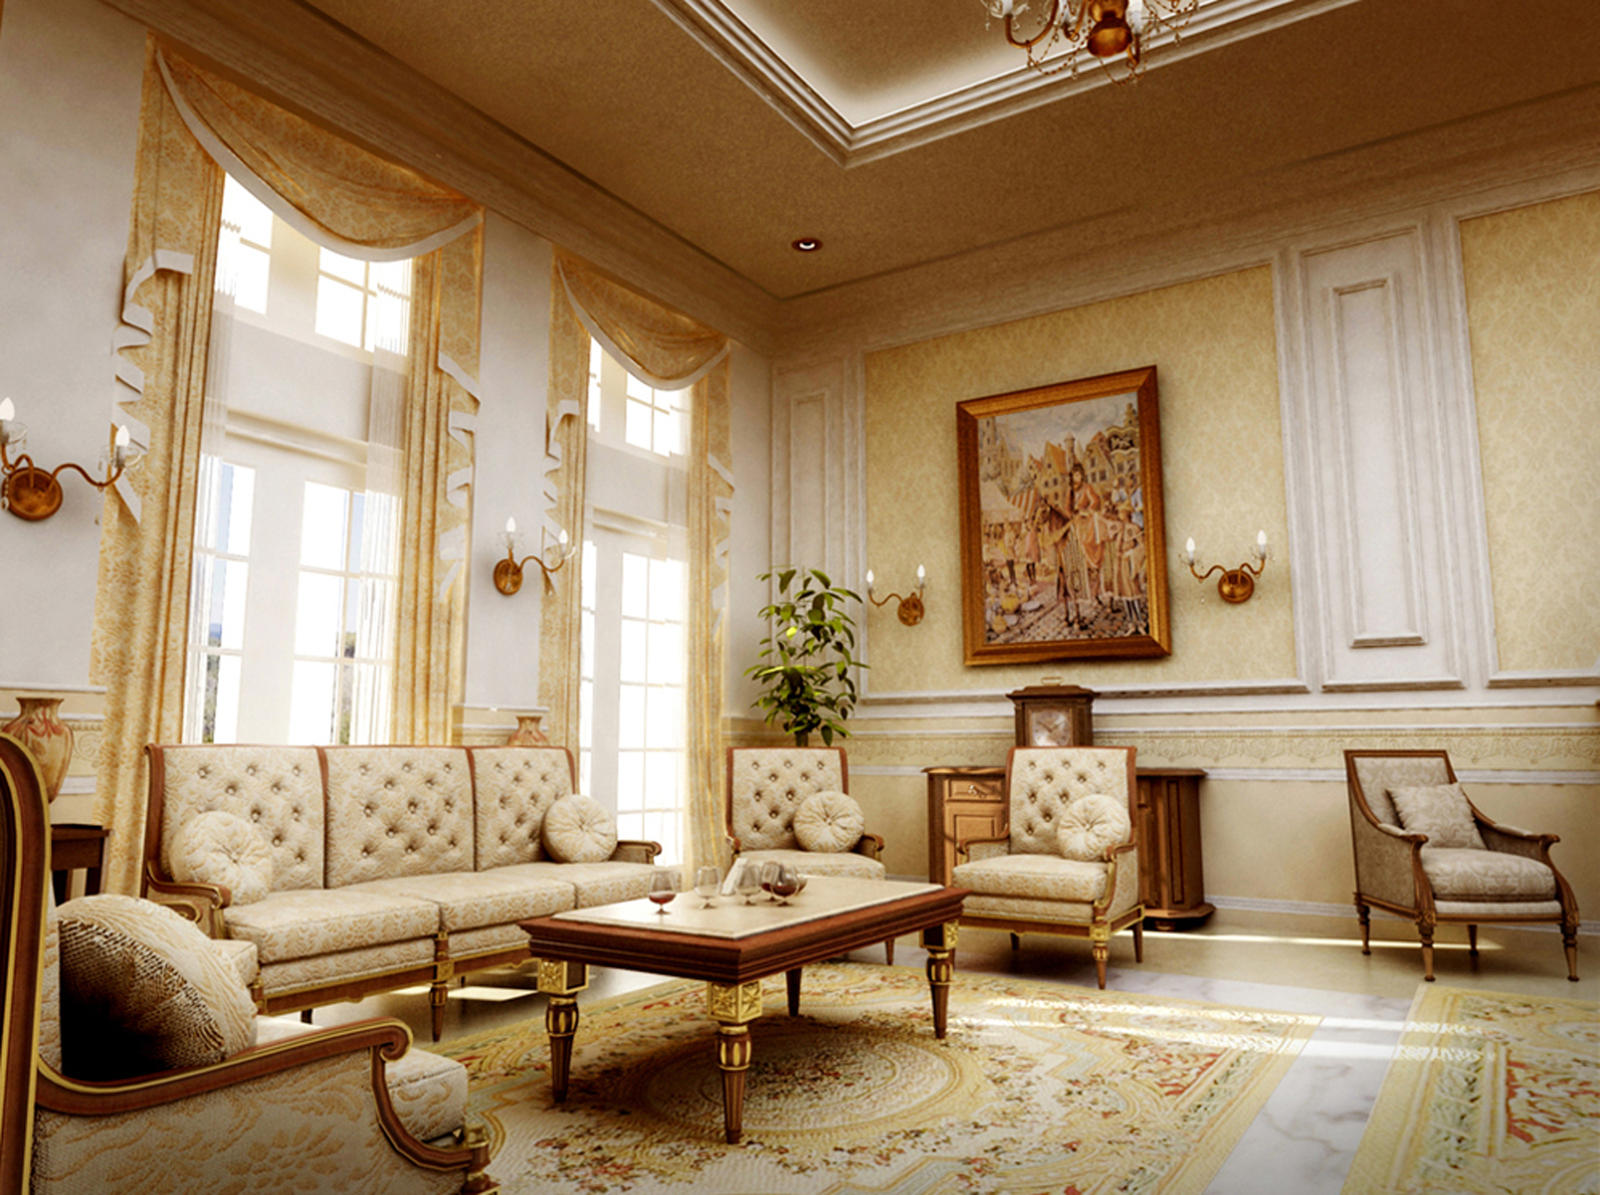 Classic interior by aboushady81 on deviantart for Dec design interieur